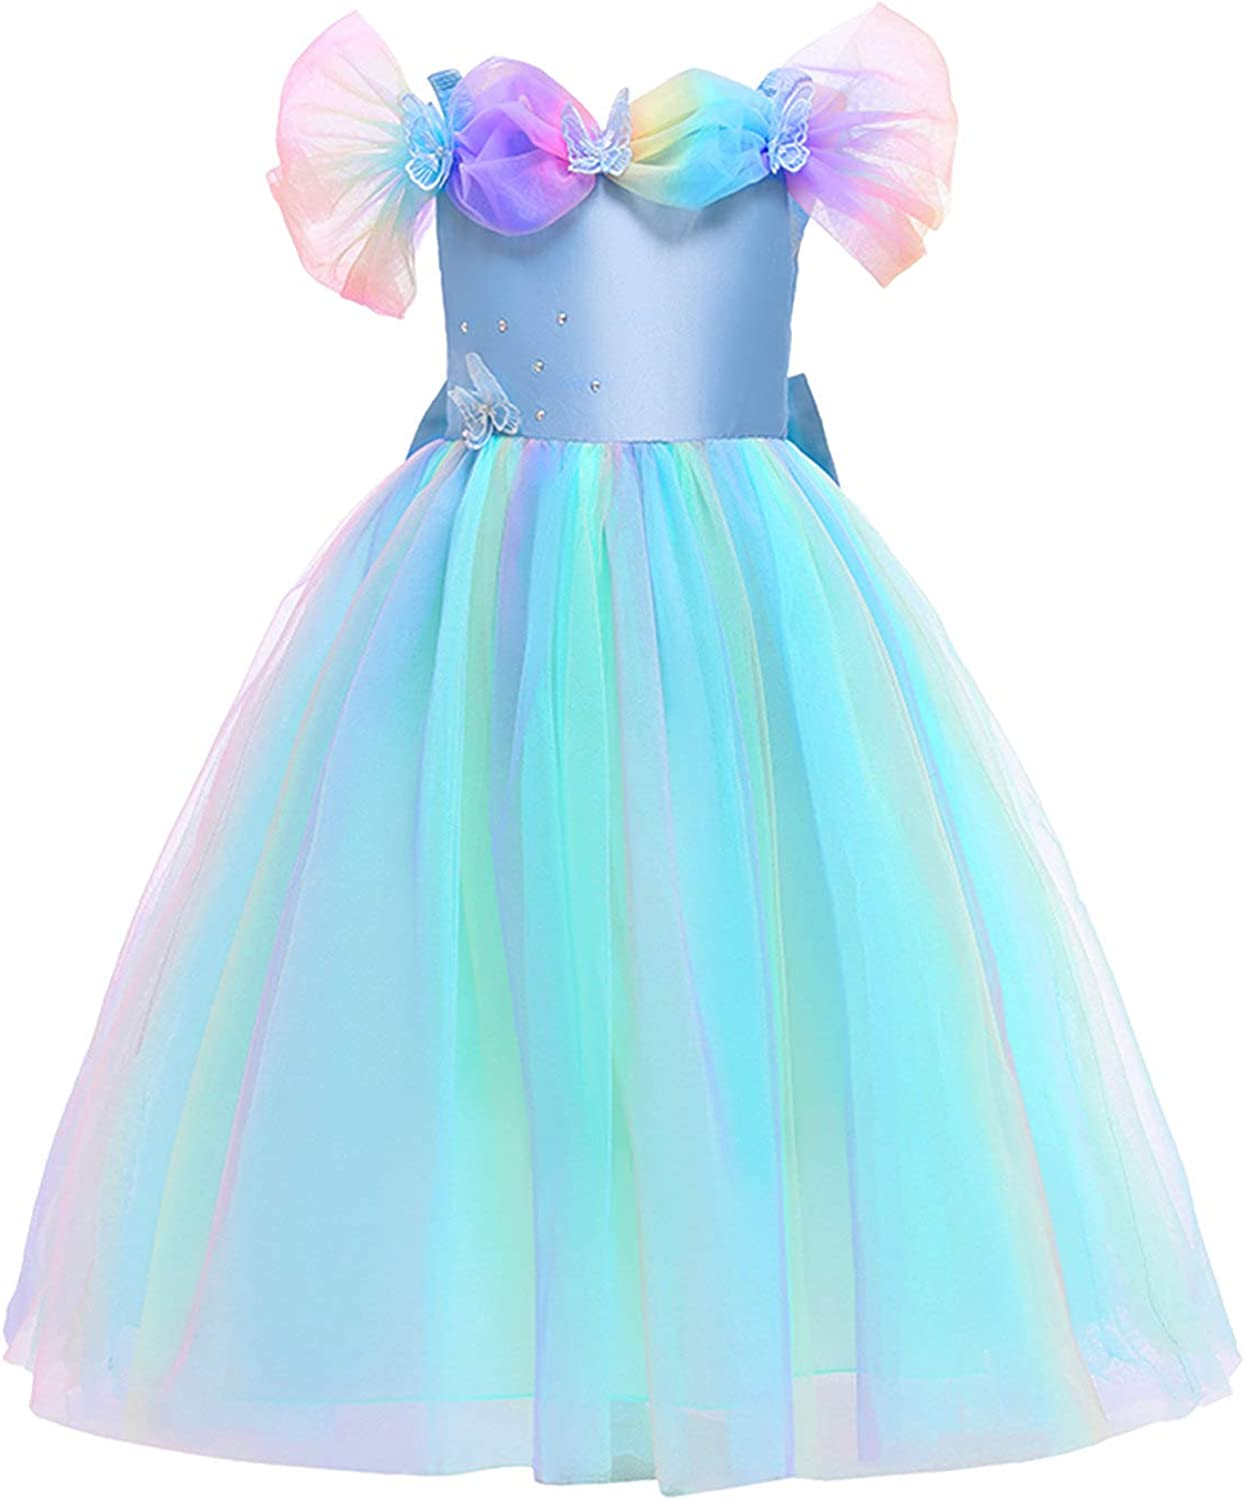 YiZYiF Kids Girl's Princess Mesh Tutu Dress Pageant Ball Gown for Special Occasion Halloween Party